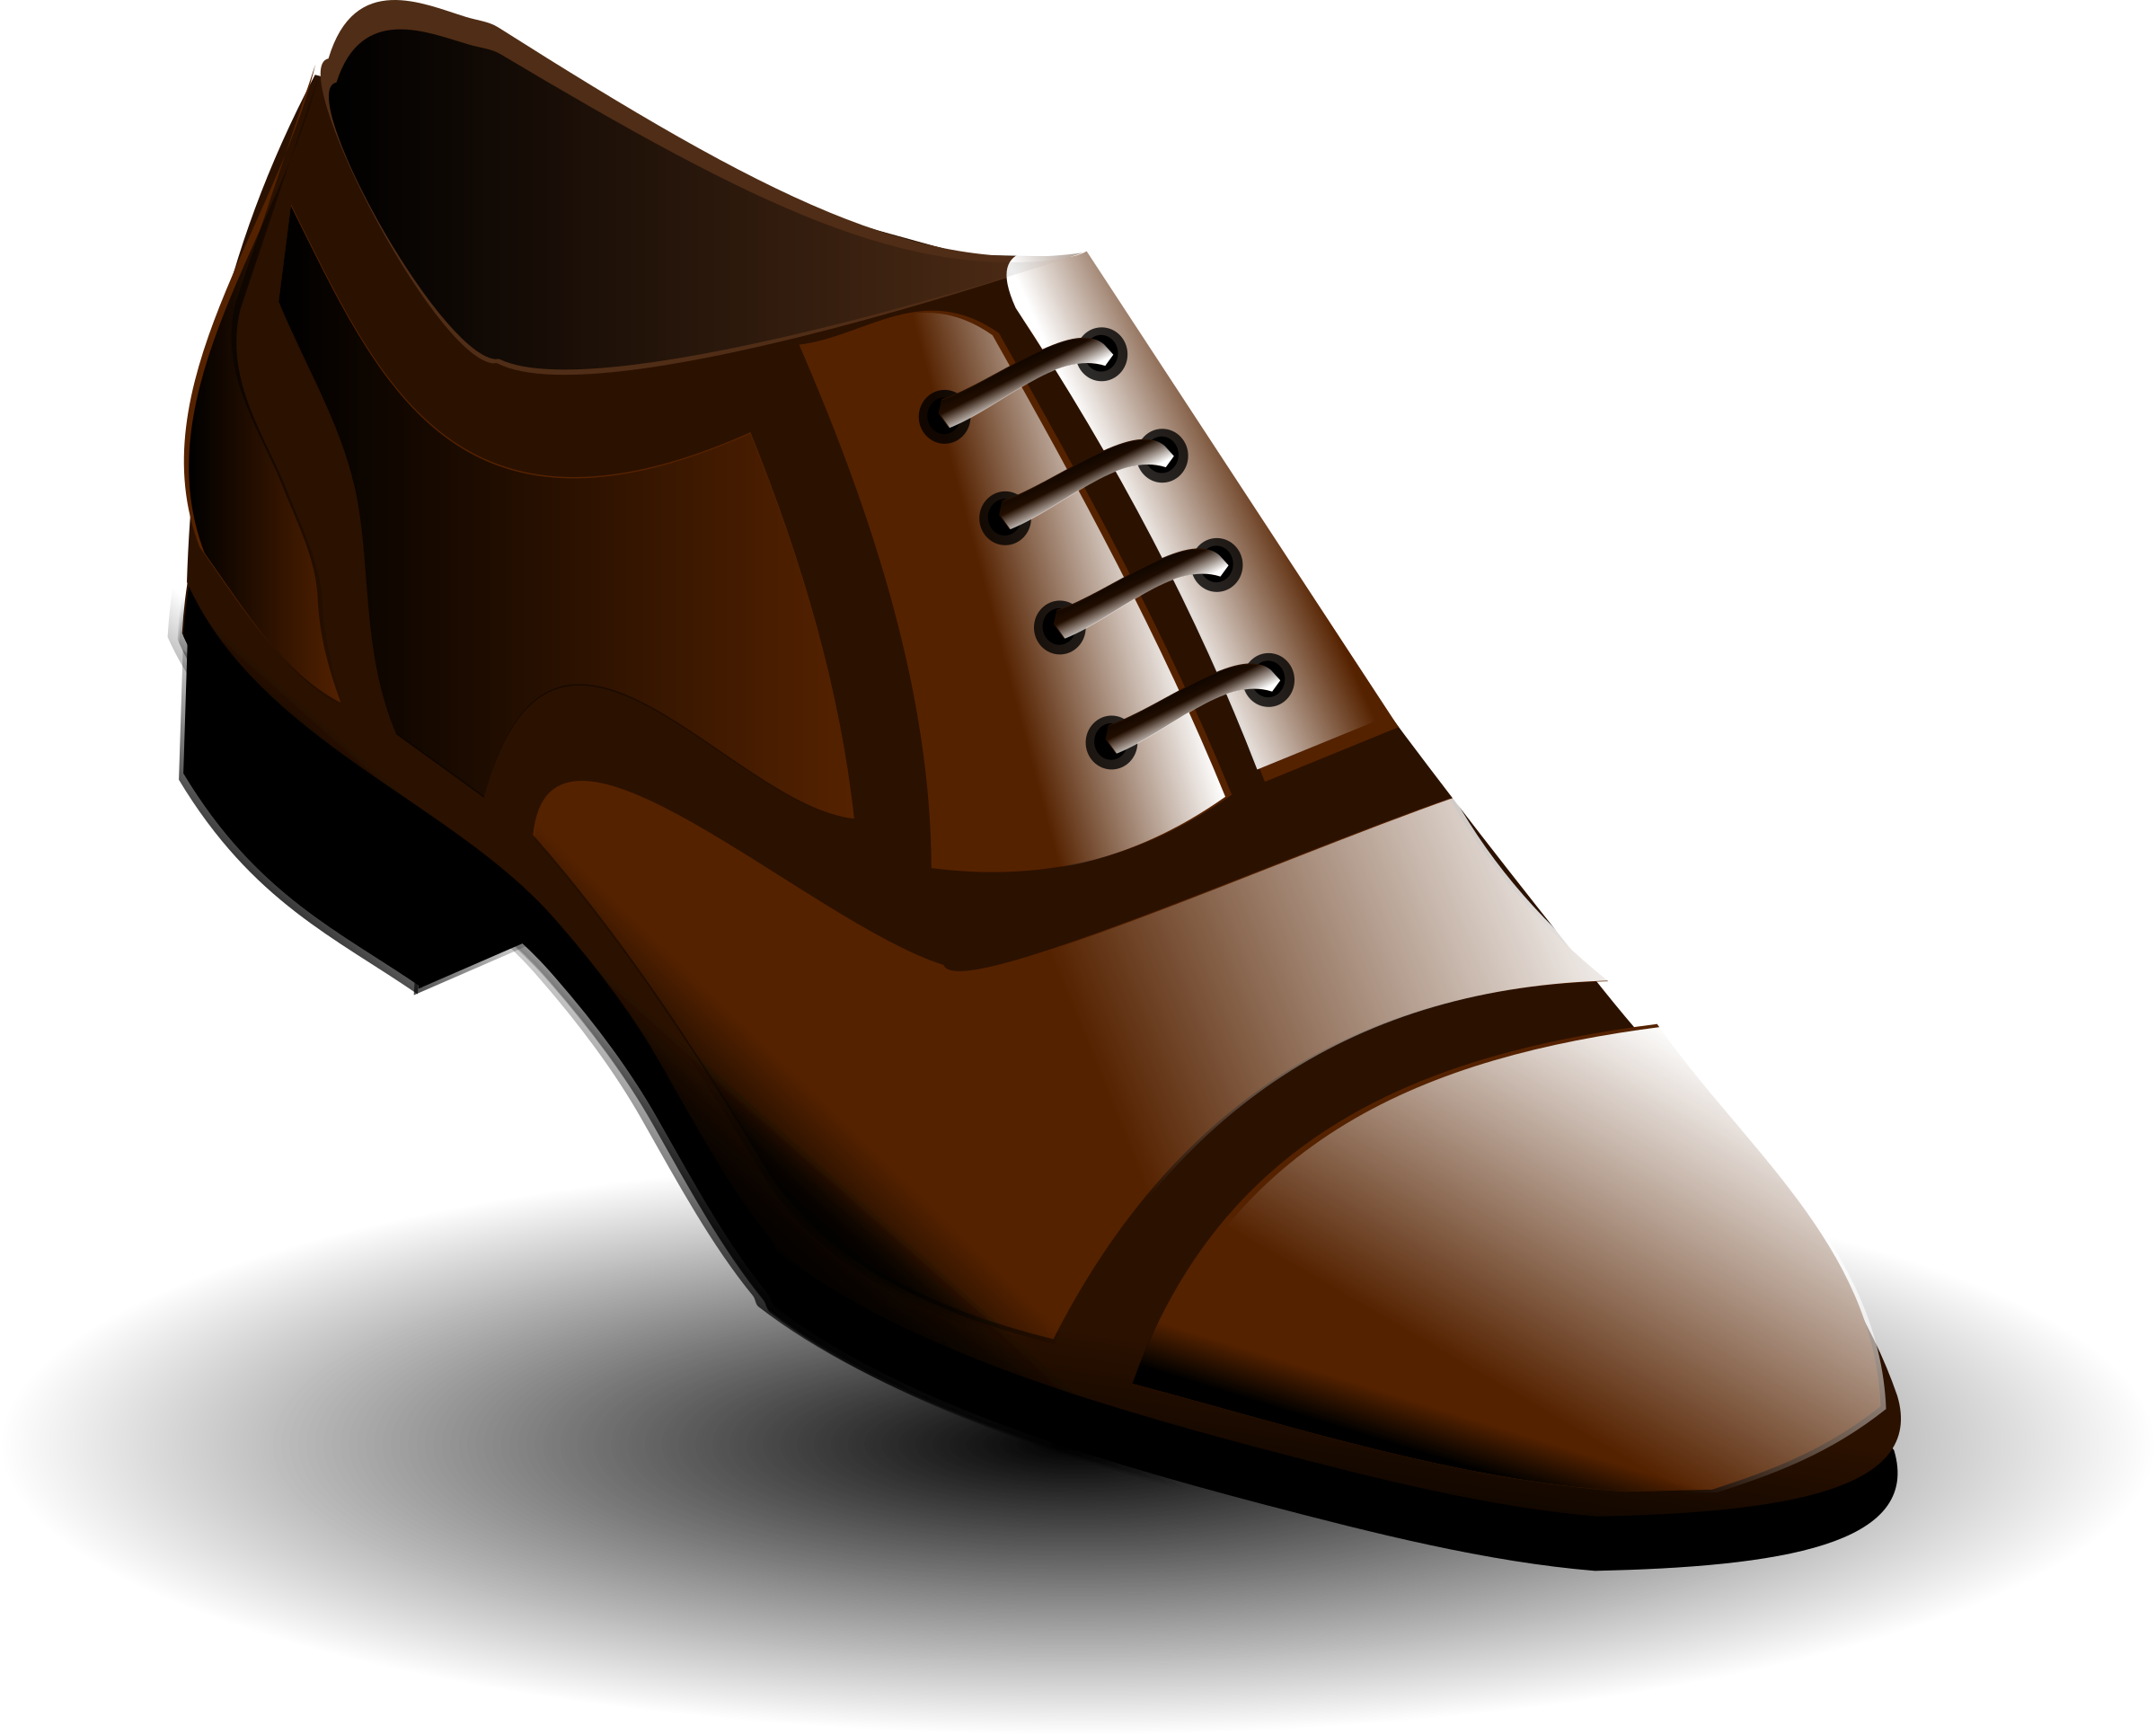 brown shoes by hatalar205